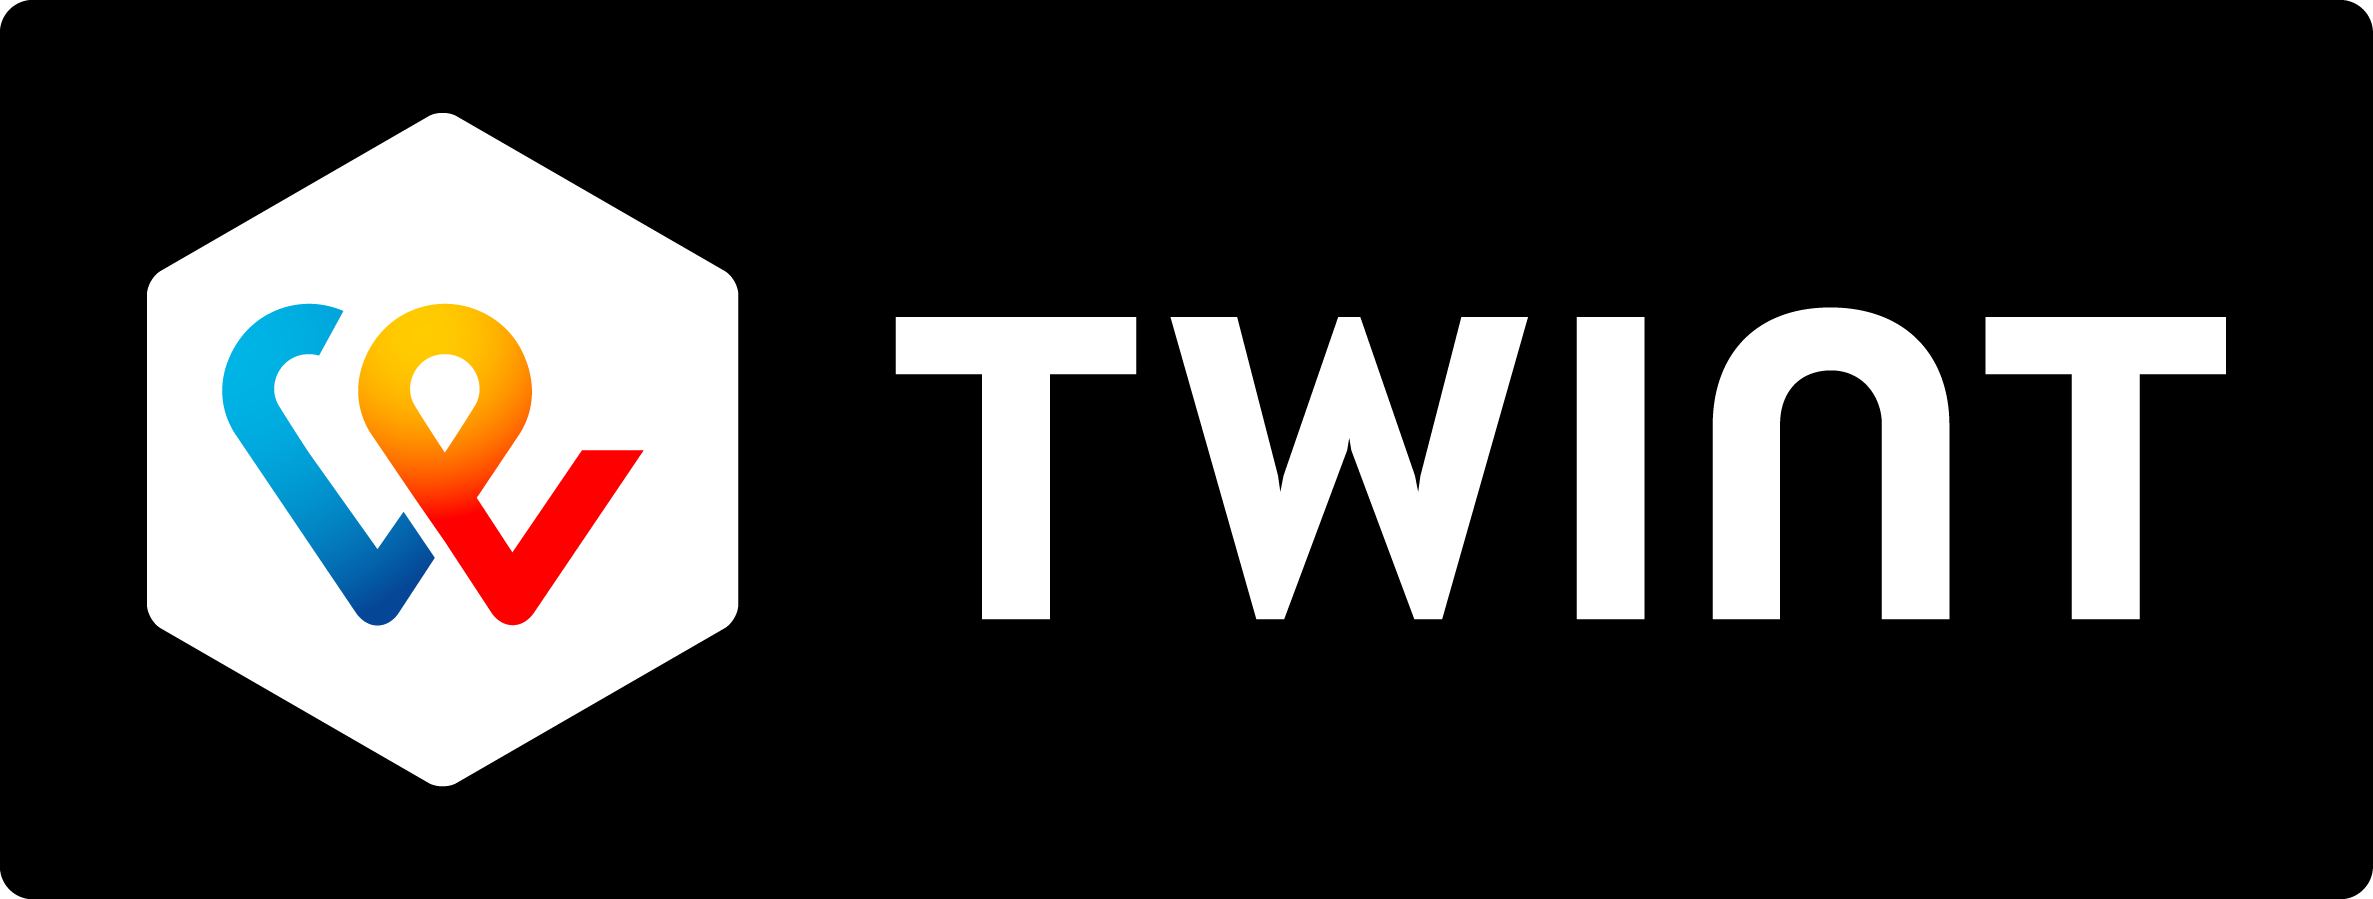 twint_logo_quer_pos_rgbpng